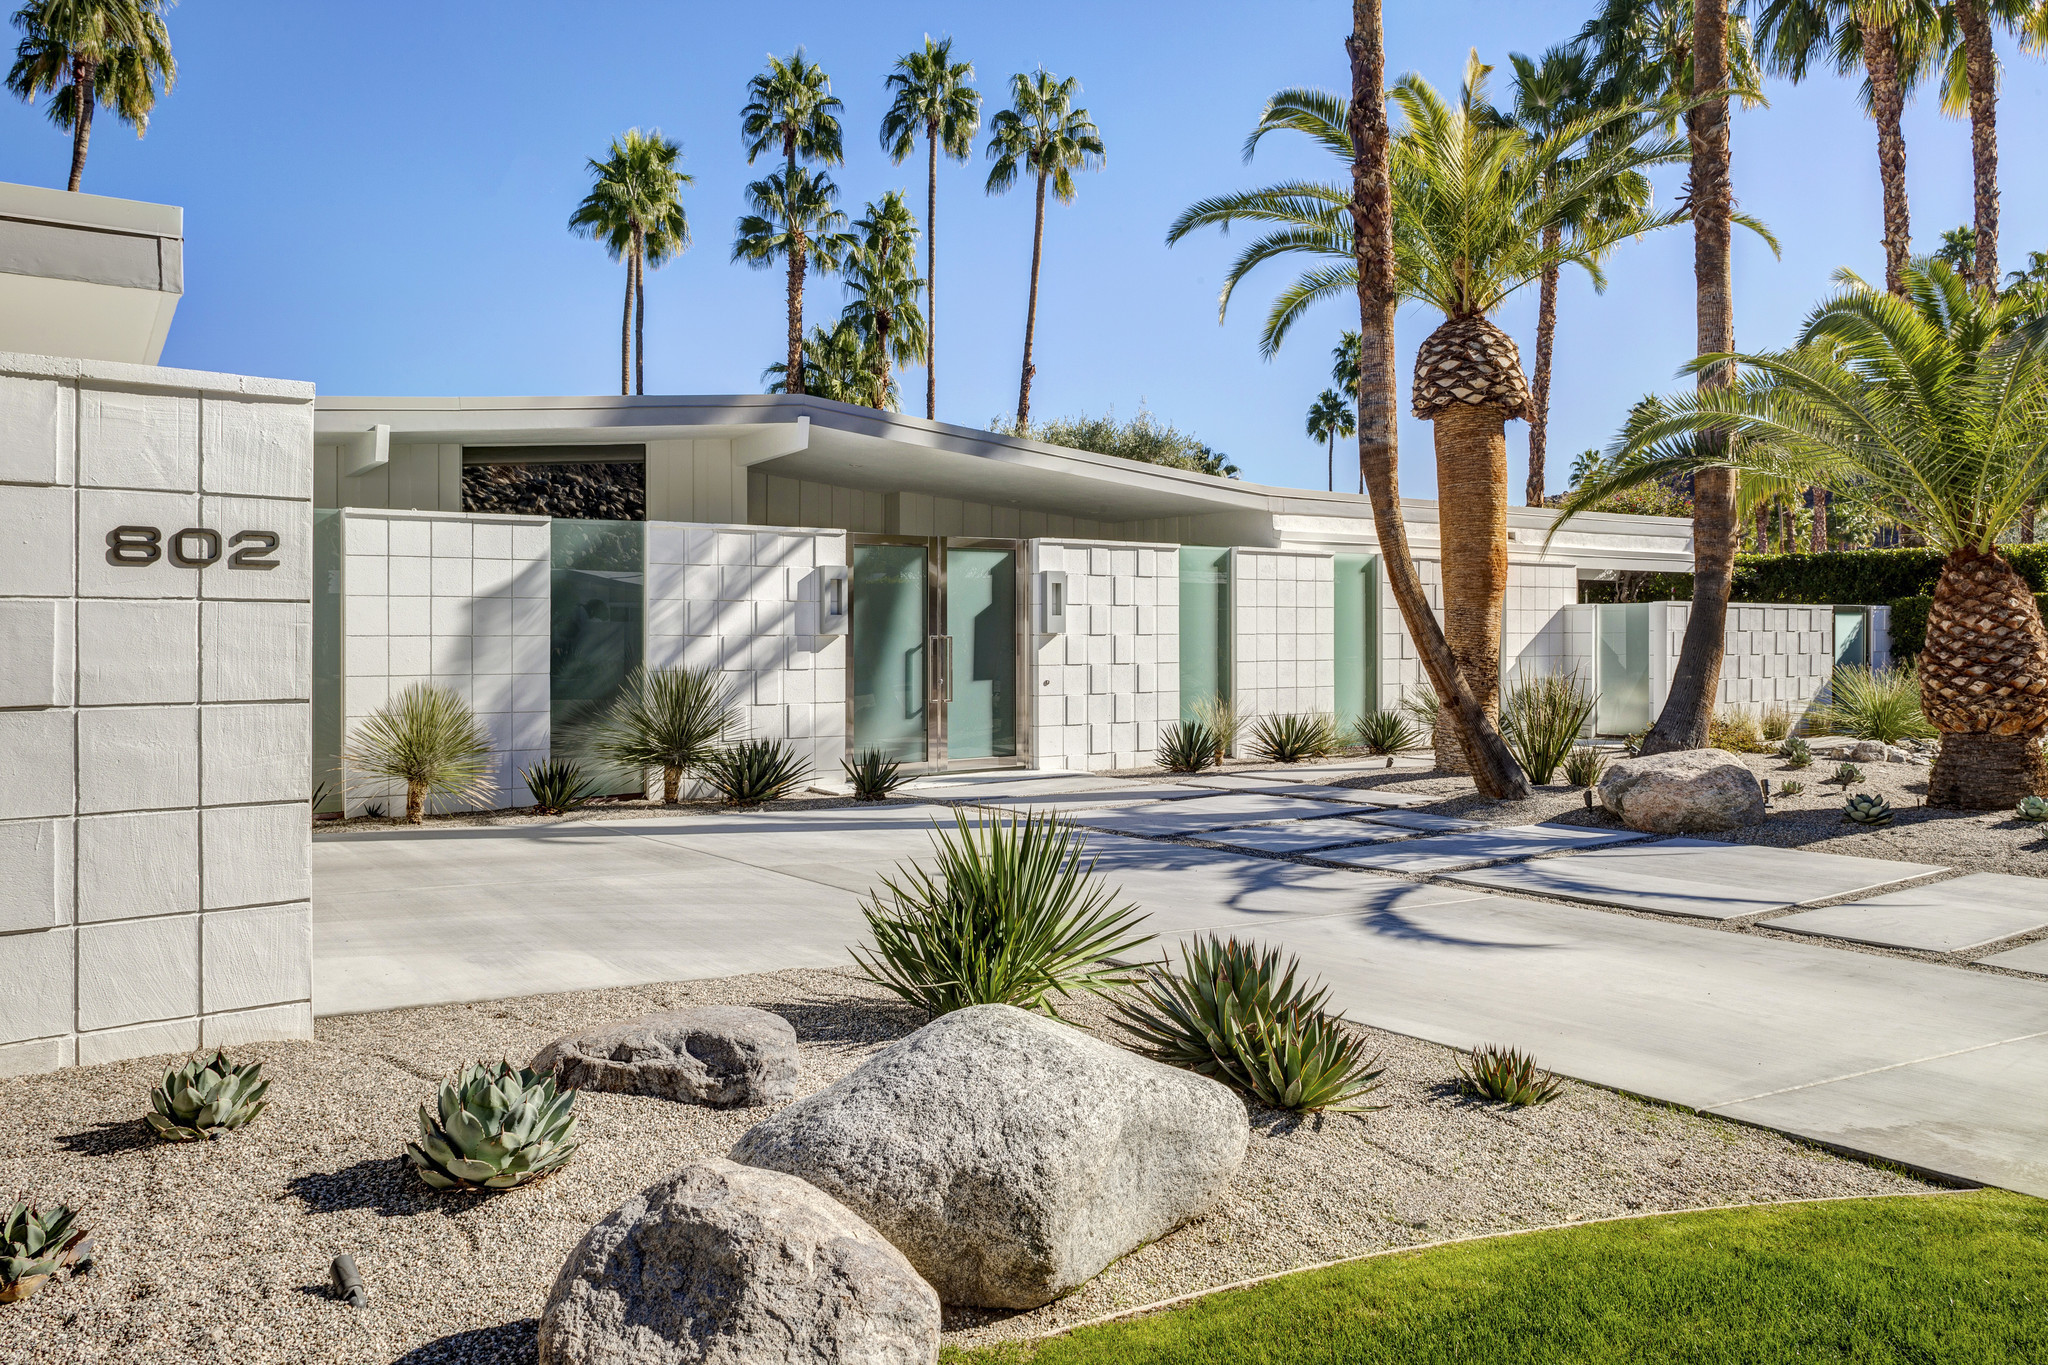 Concrete Block Design Sets The Tone At Palm Springs Redo